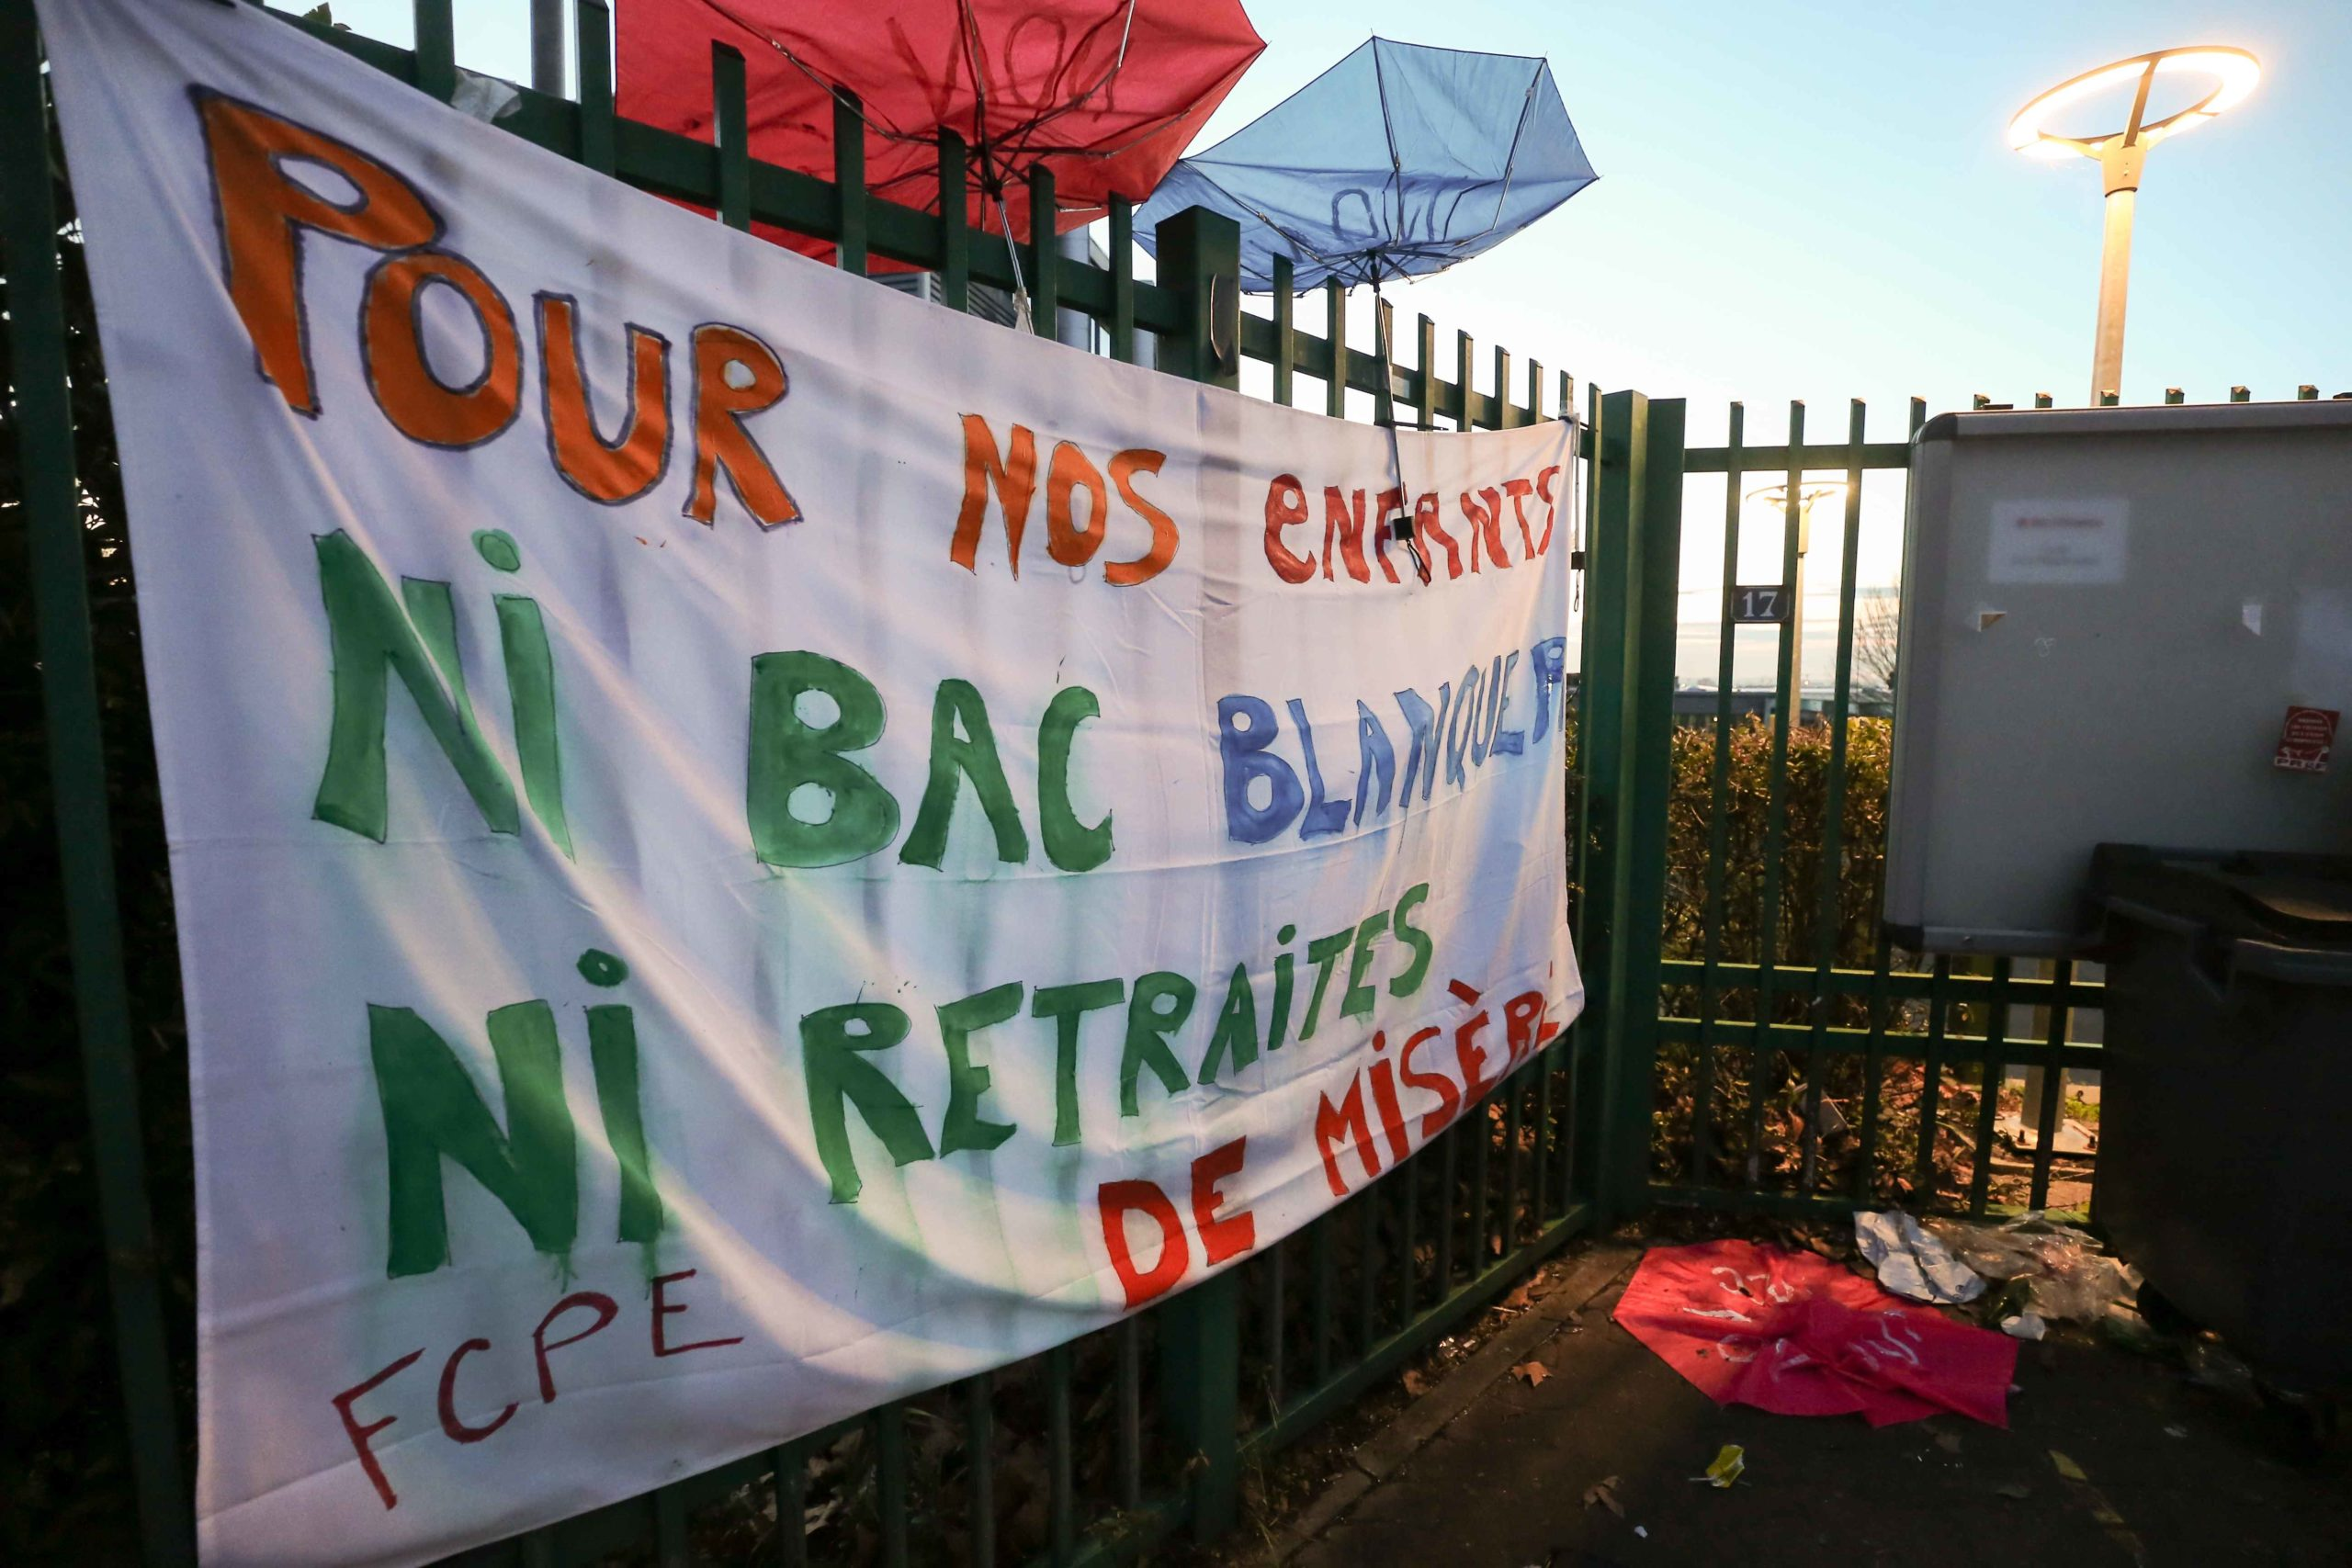 Student's families opposed to the implementation of the baccalaureate reform (E3C) are putting up a banner reading « For our children, neither minister's bacalaureate, nor meagre pension » on the front gate of the Lycee Jean Macé, located in Vitry-s